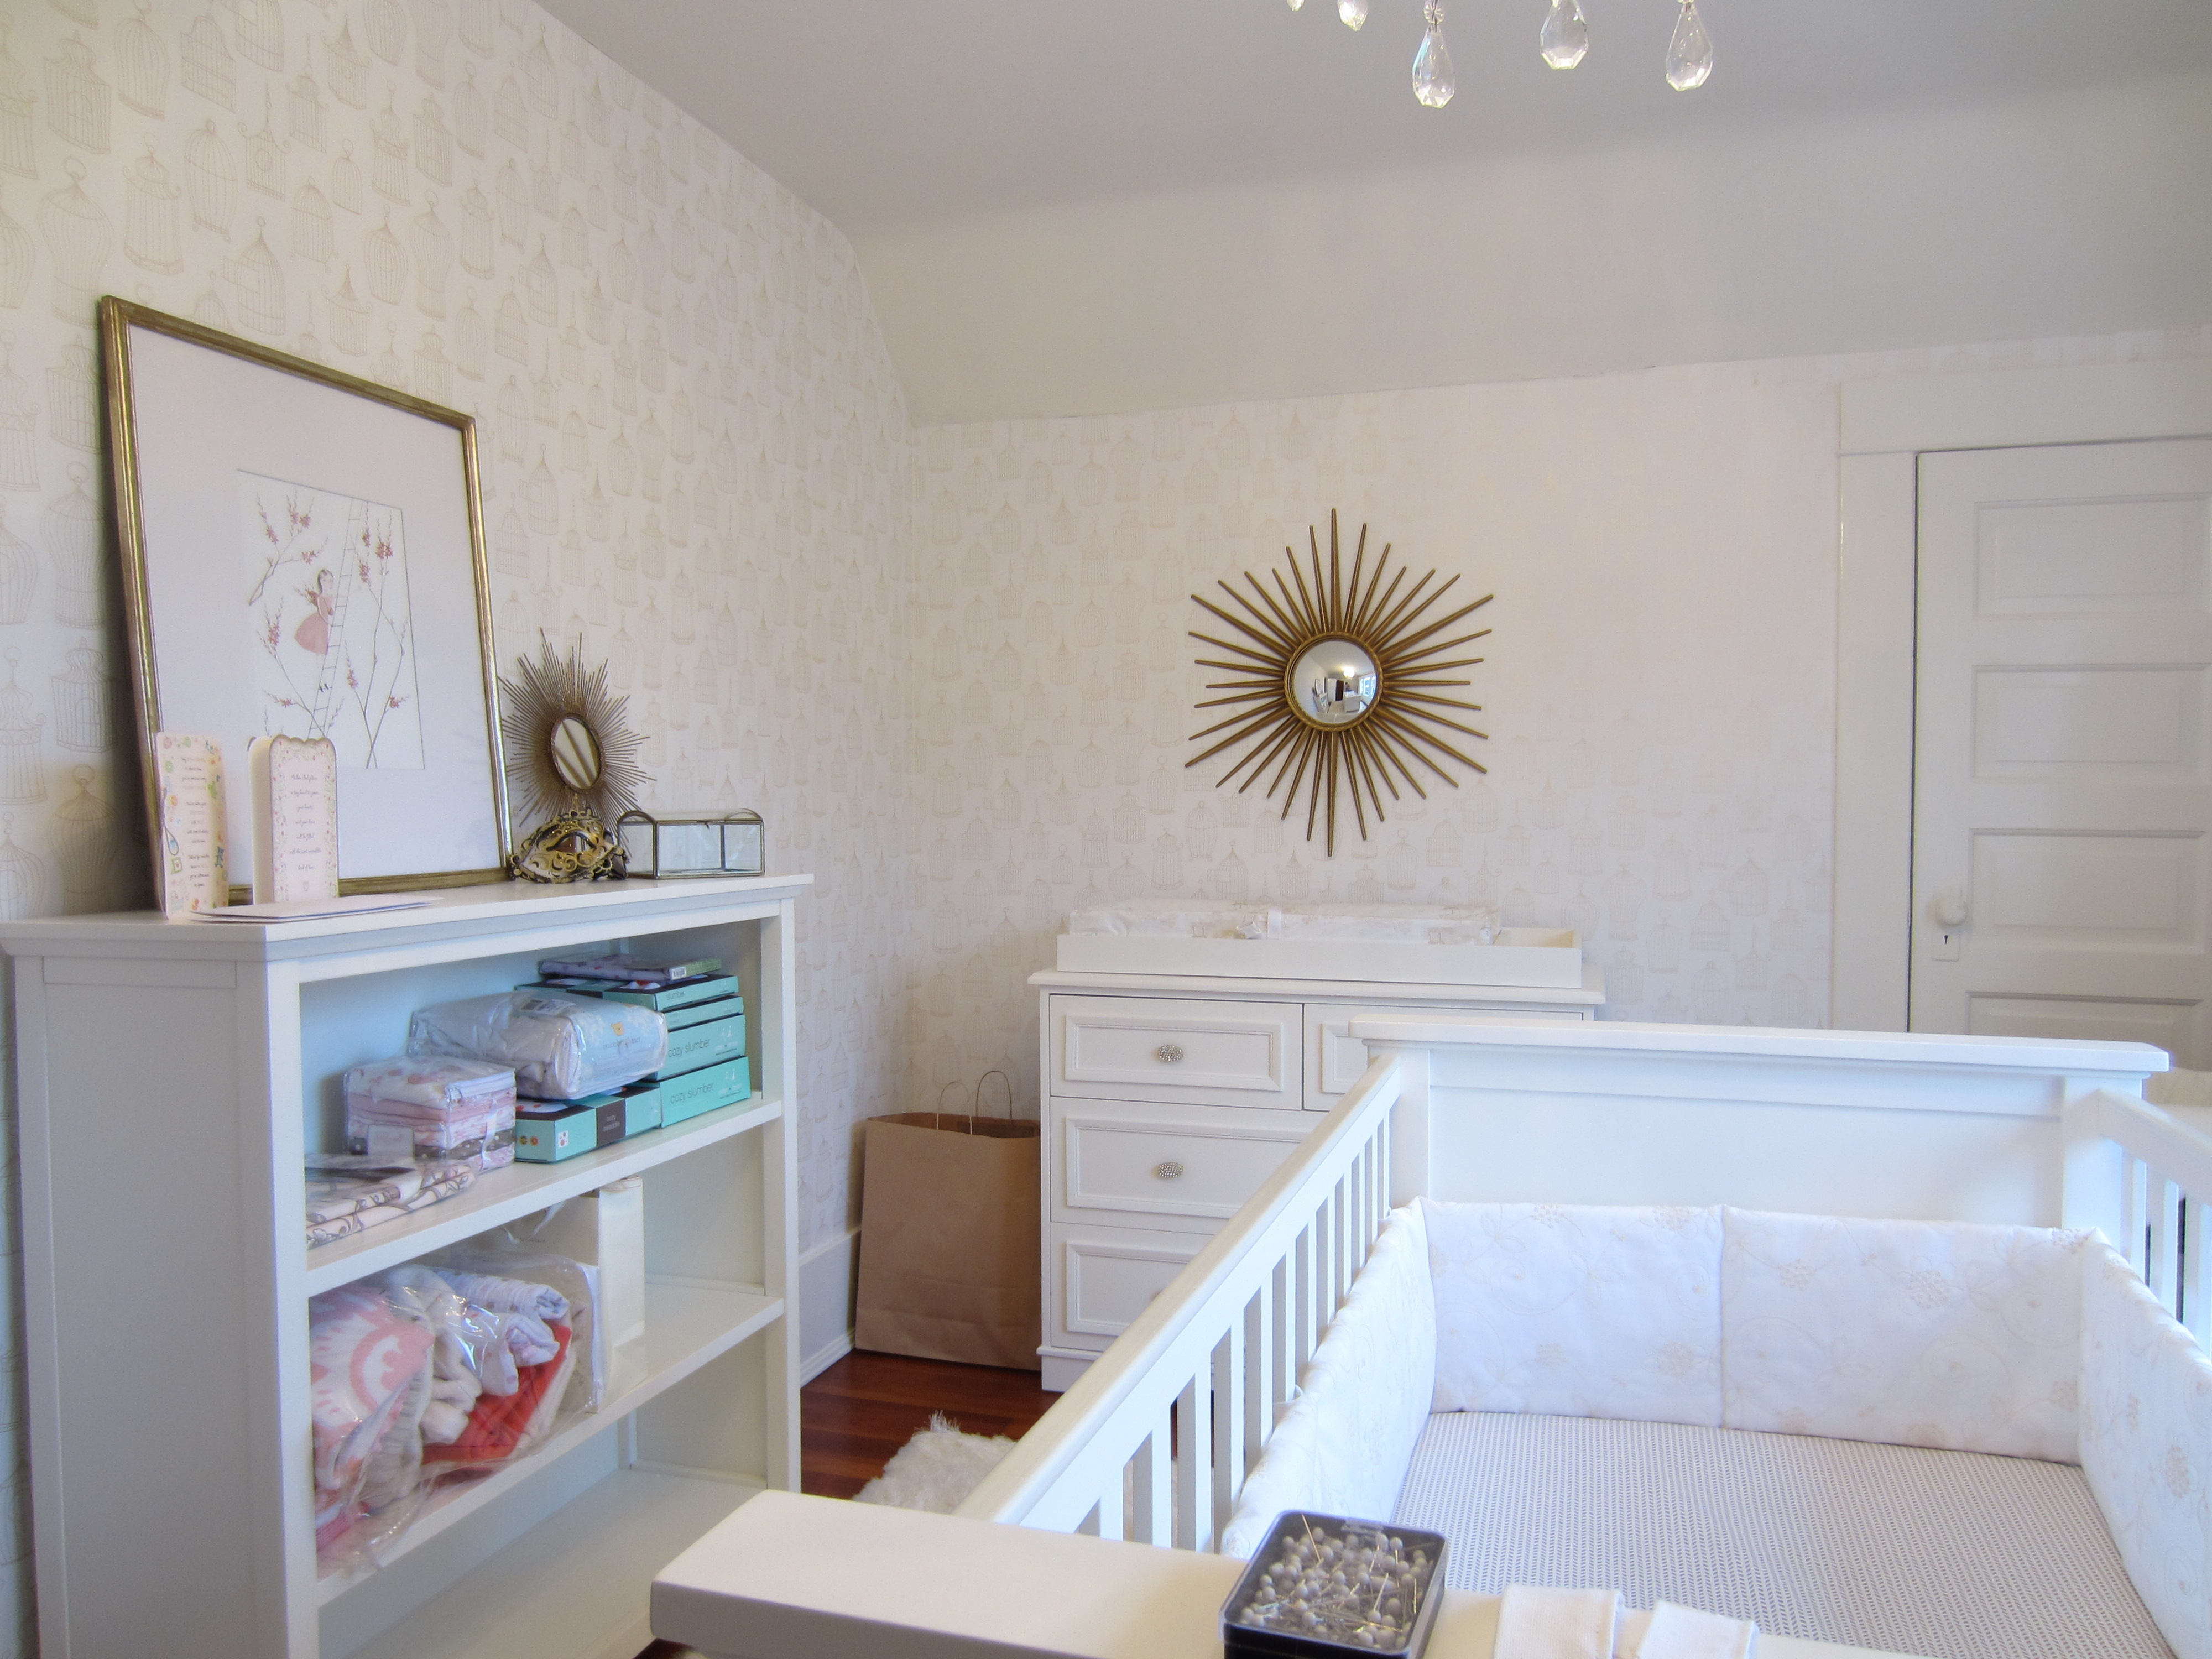 dsc refresh the glow kids in stars design potterybarn category from barn of those room blog rooms barns better are yep dark star ceiling pottery tu wars view